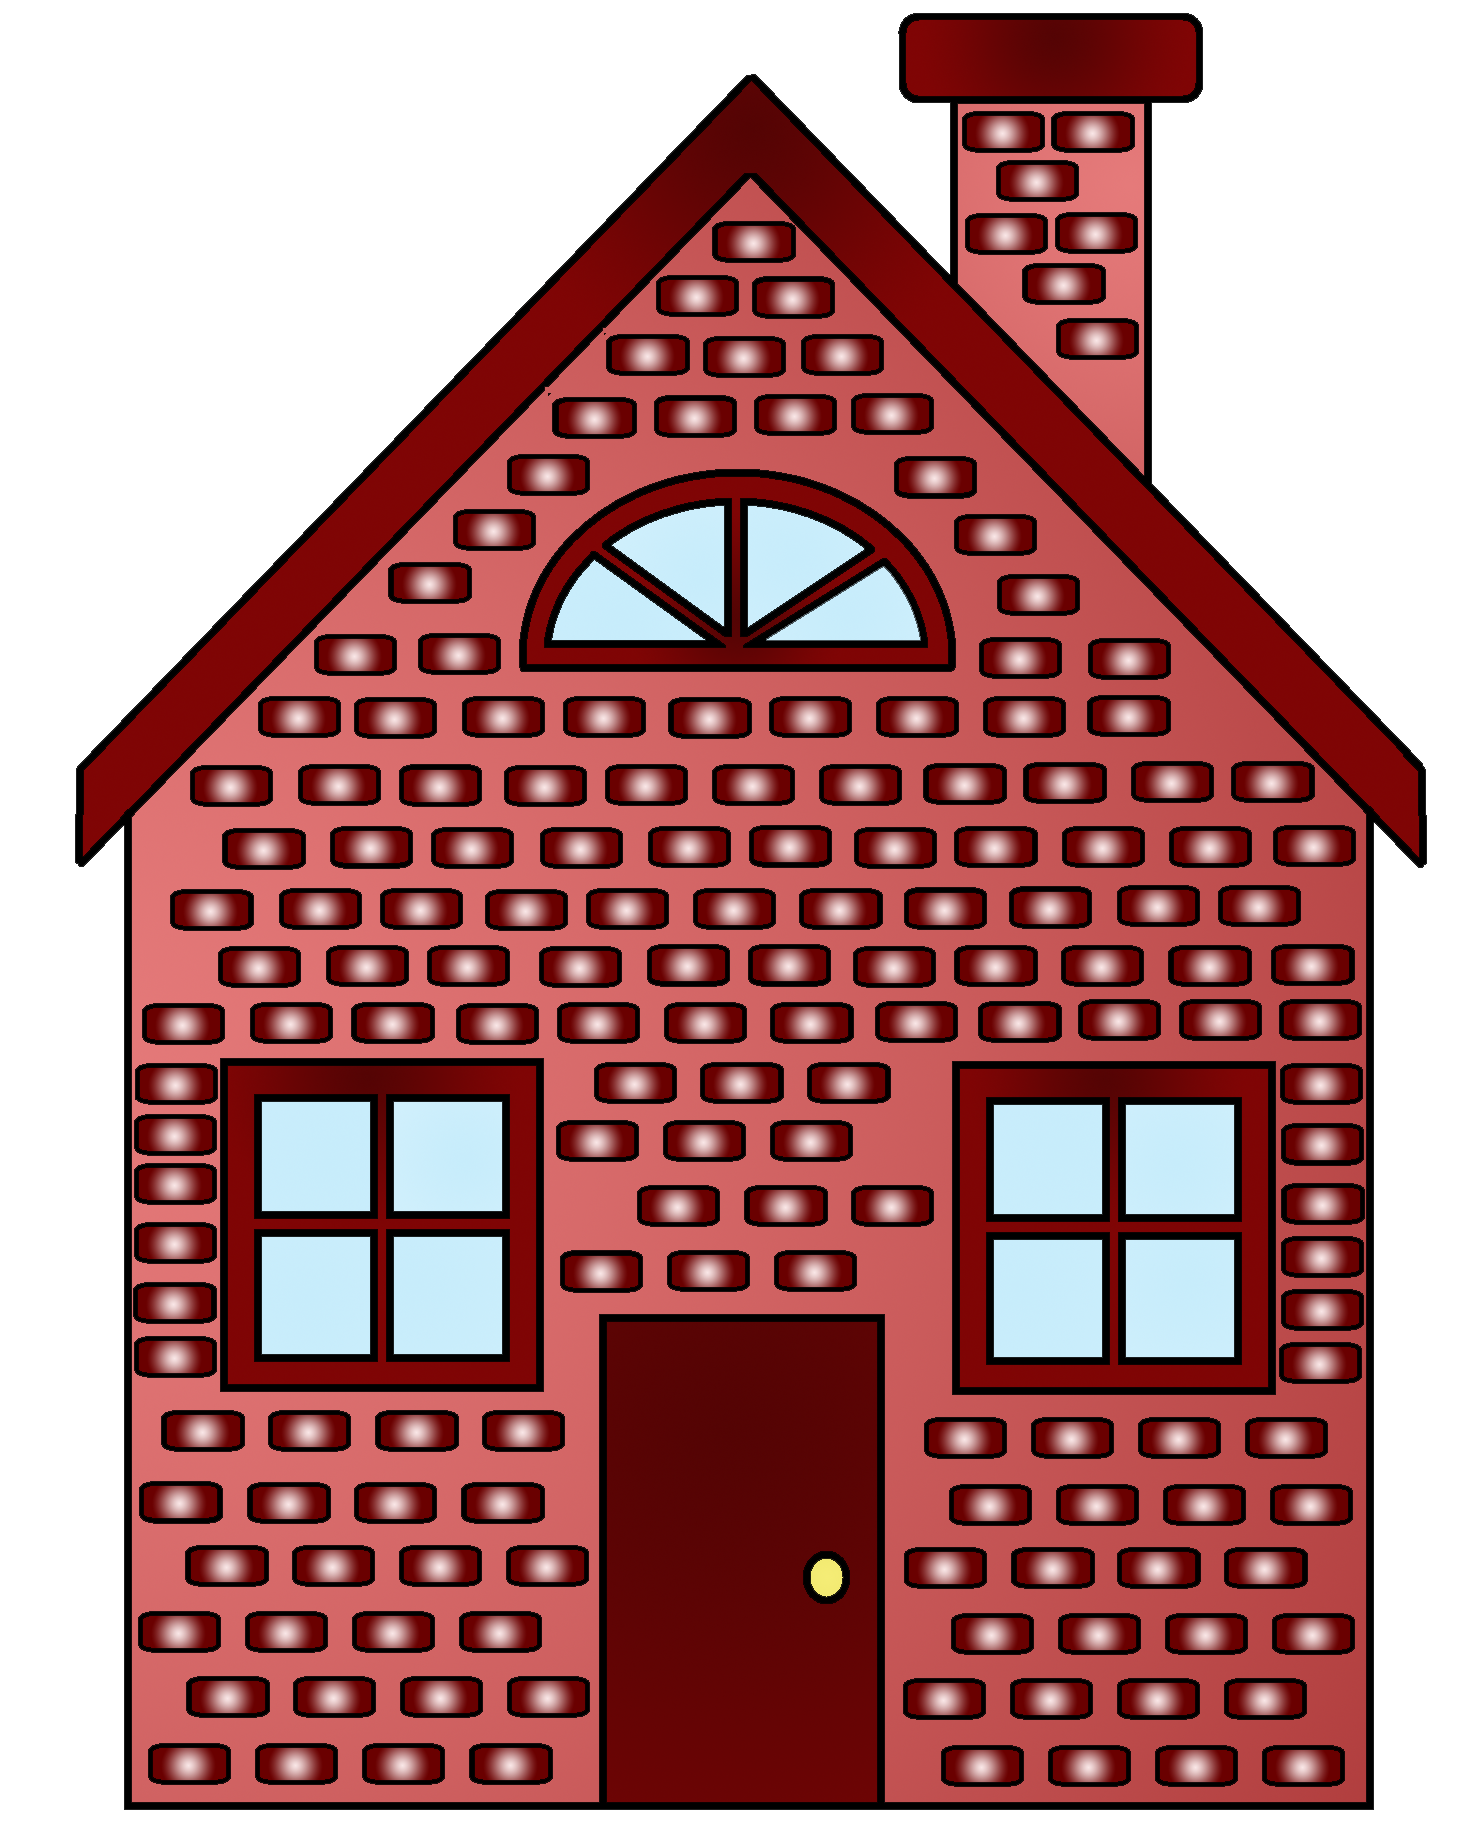 Home clipart brick house. Graphics by ruth little